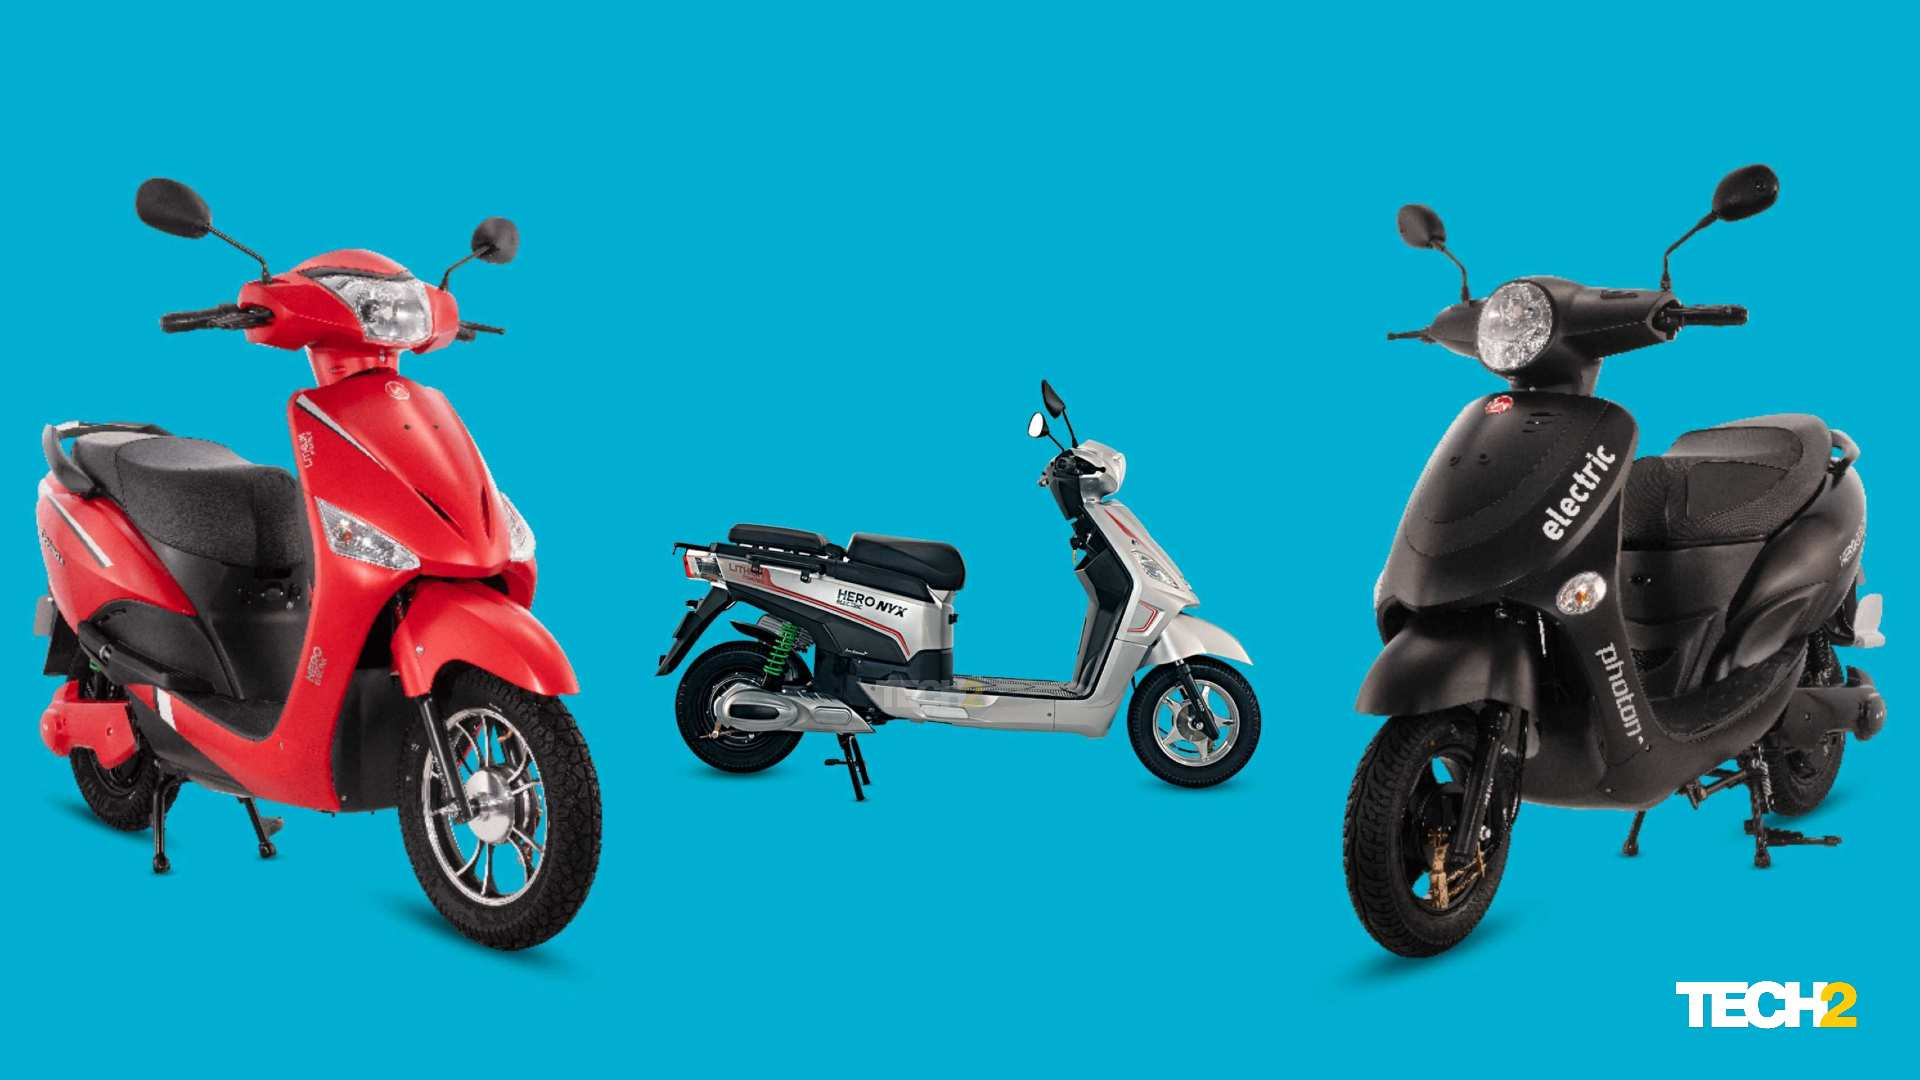 Hero Electric's mid-speed scooter range has seen a drastic drop in prices post introduction of state subsidies. Image: Tech2/Amaan Ahmed